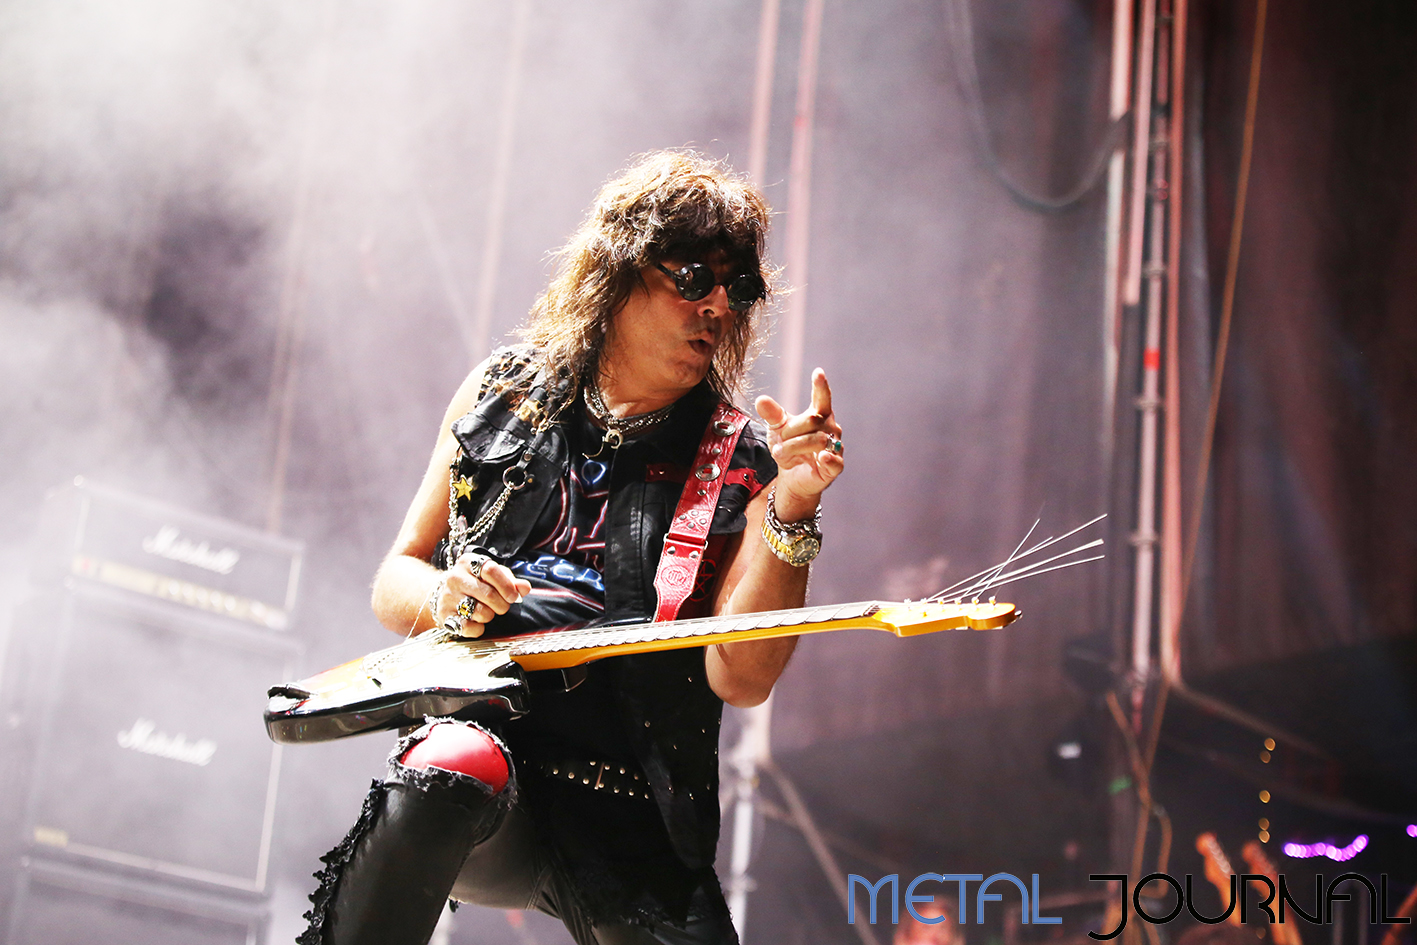 rata blanca - leyendas del rock 2019 metal journal pic 10